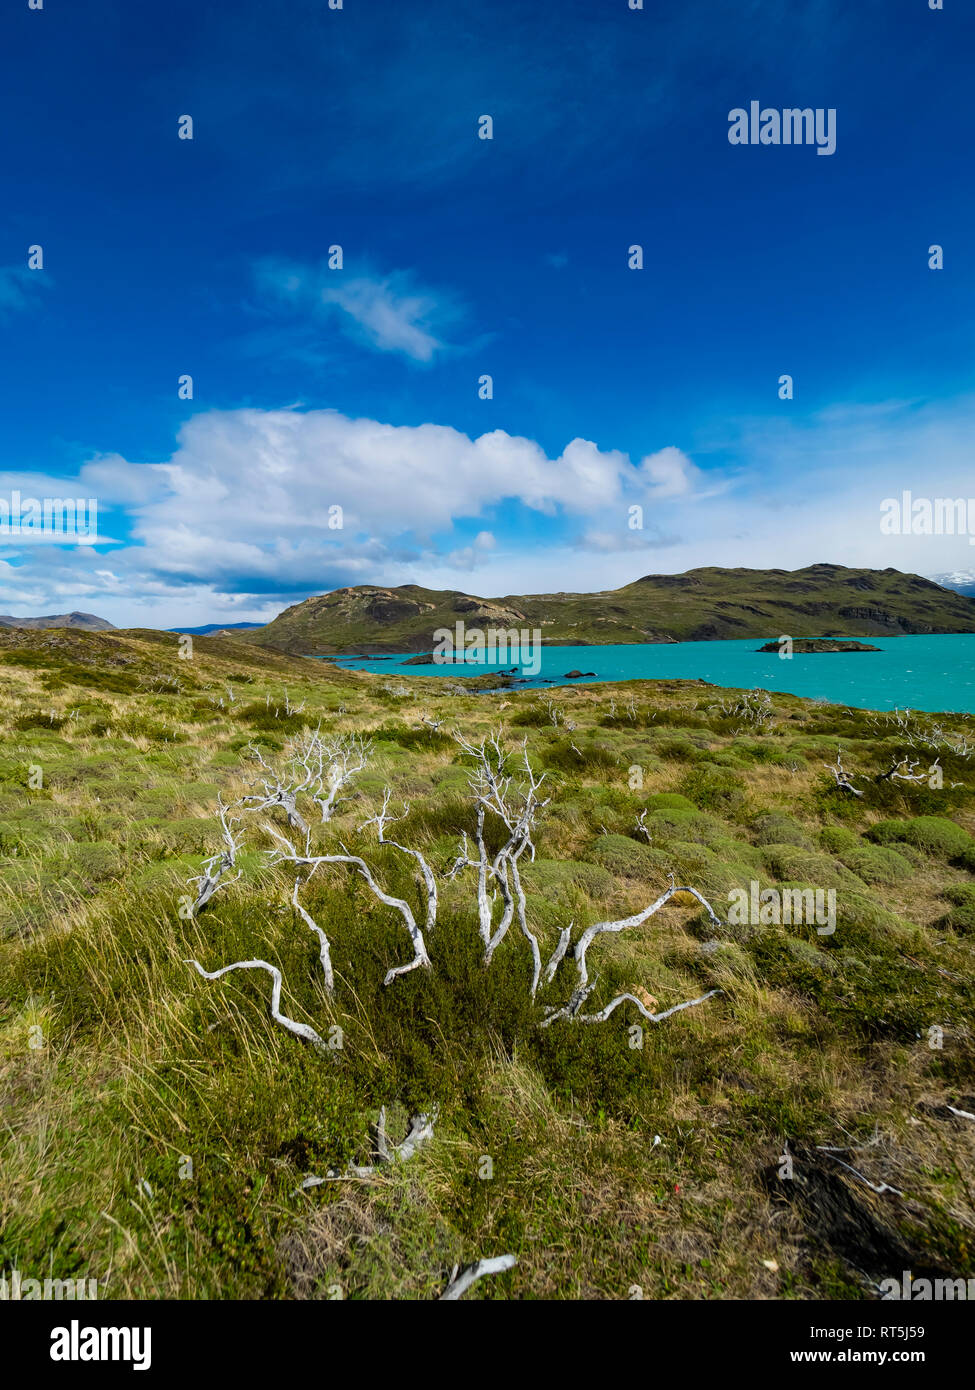 Chile, Patagonia, Torres del Paine National Park, Lago Nordenskjold - Stock Image